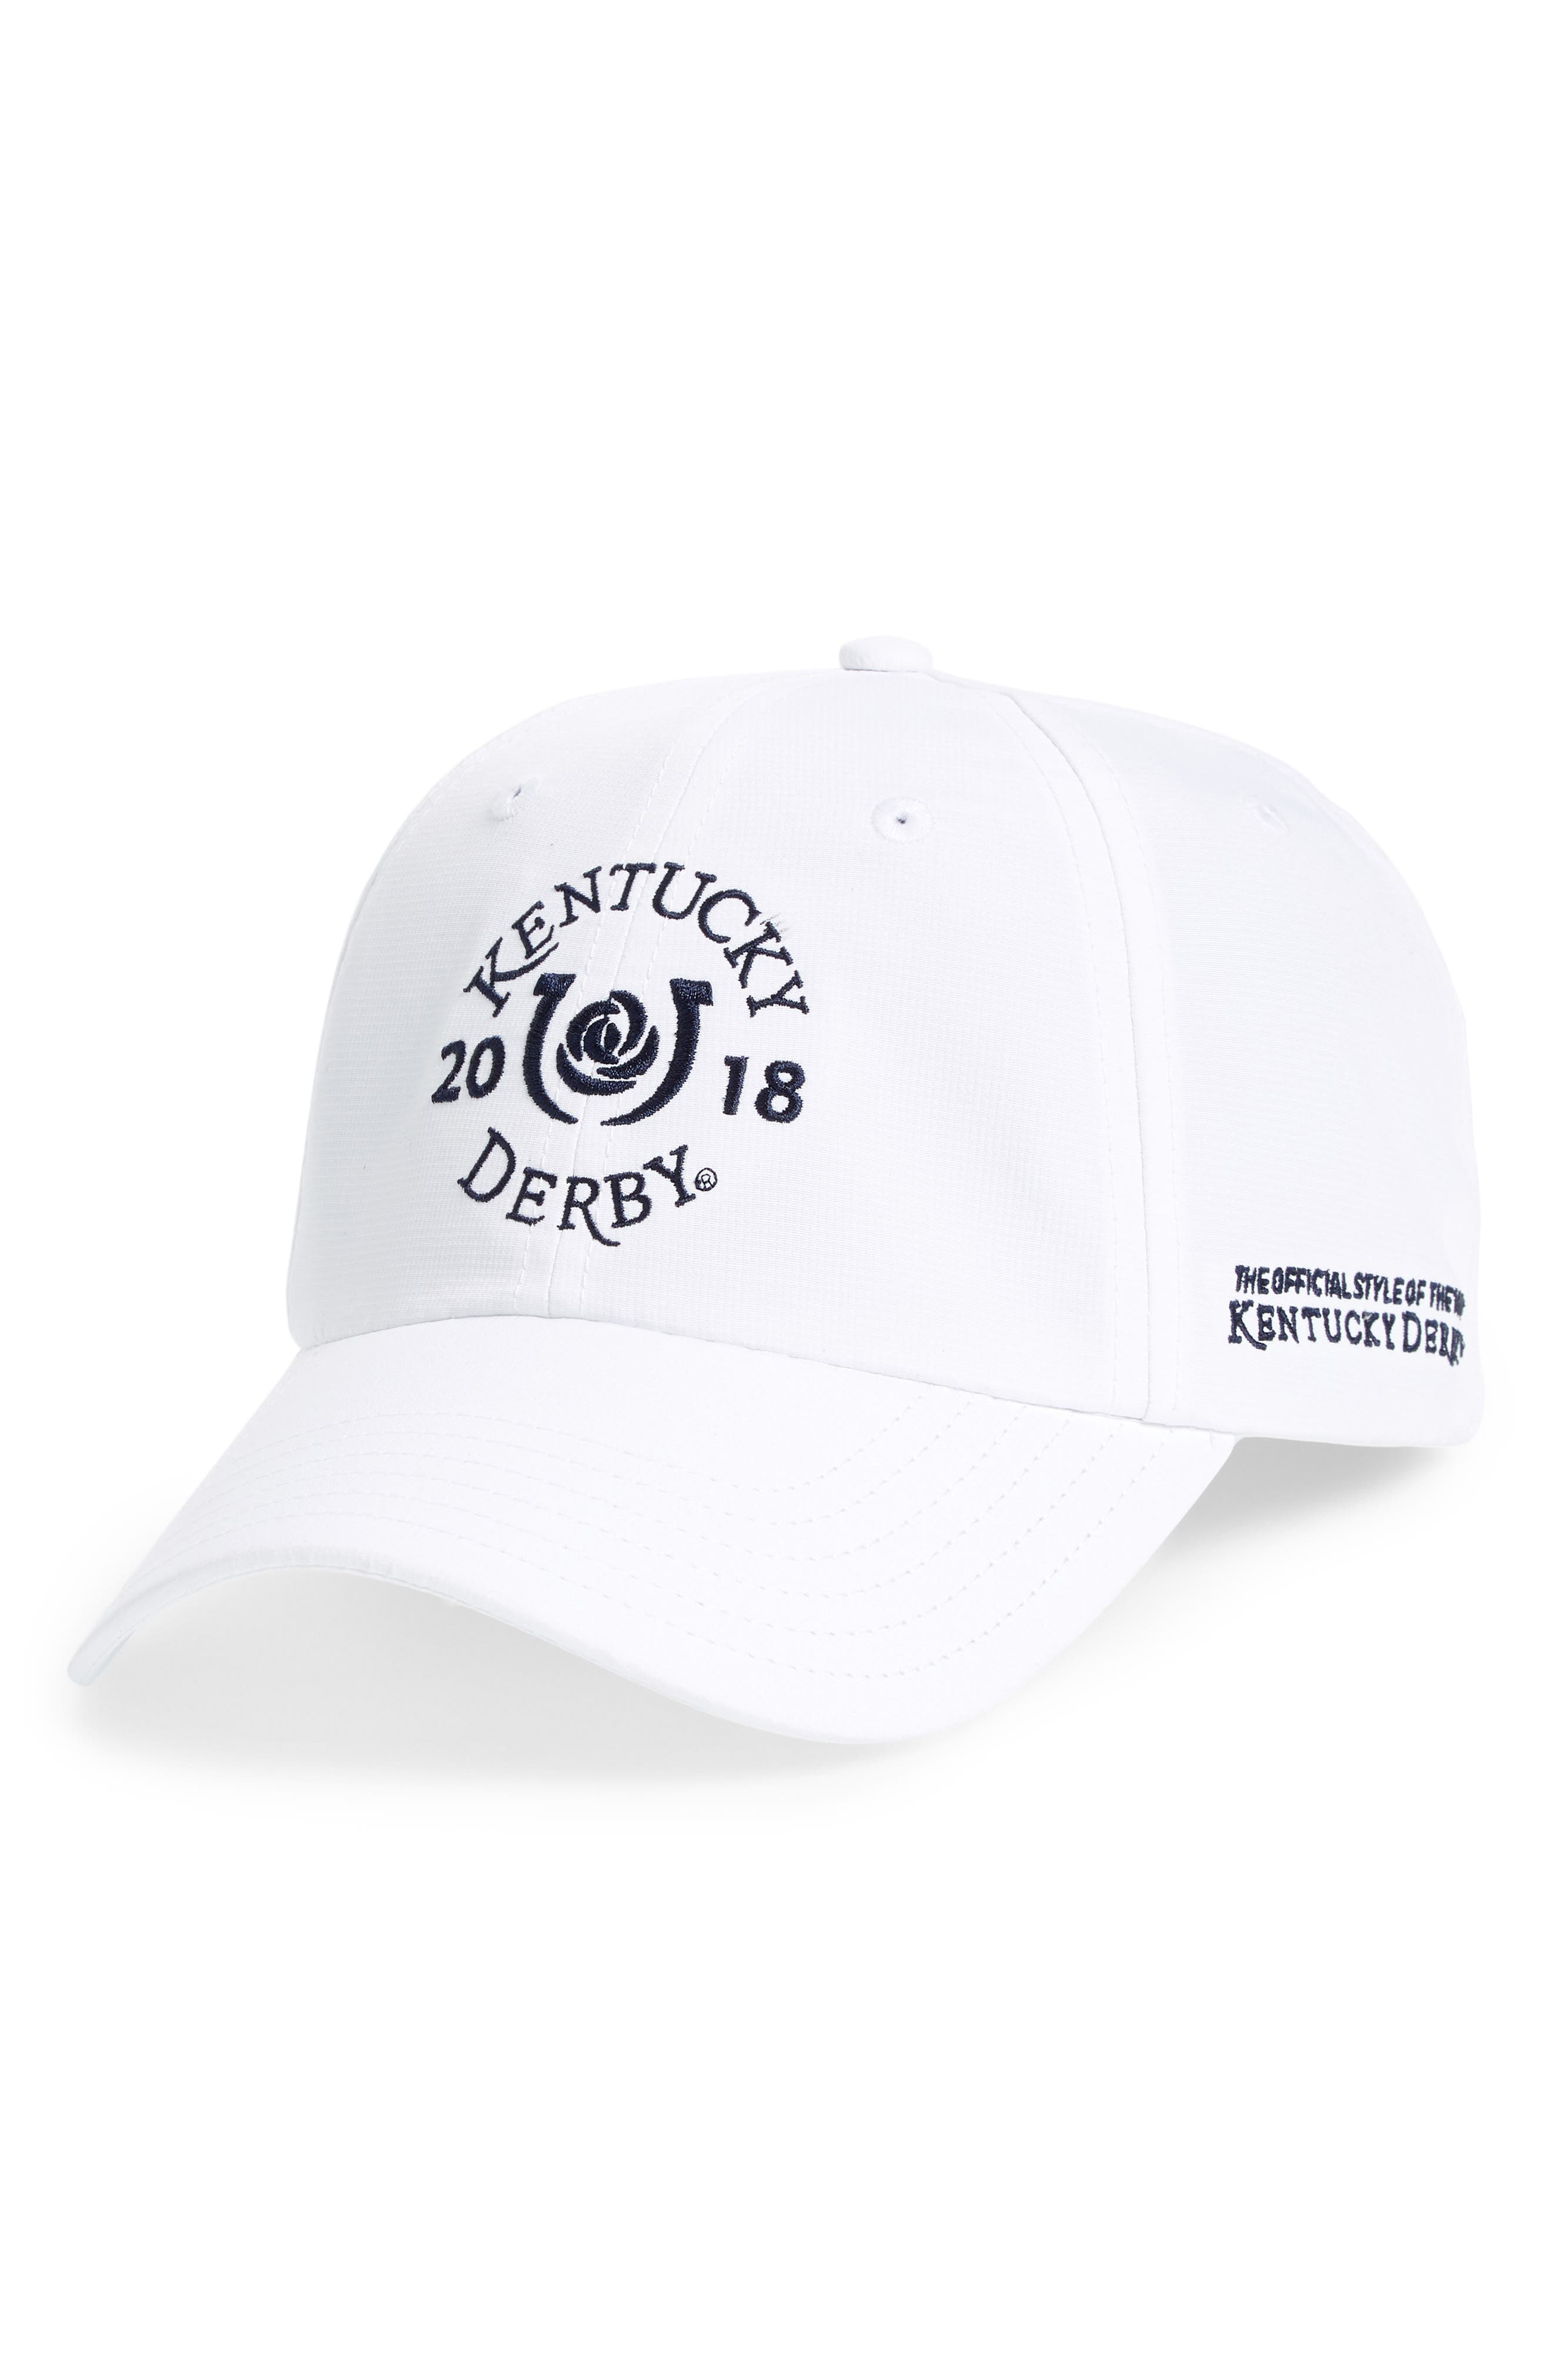 2018 Kentucky Derby<sup>®</sup> Garland of Roses Cap,                             Main thumbnail 1, color,                             White Cap